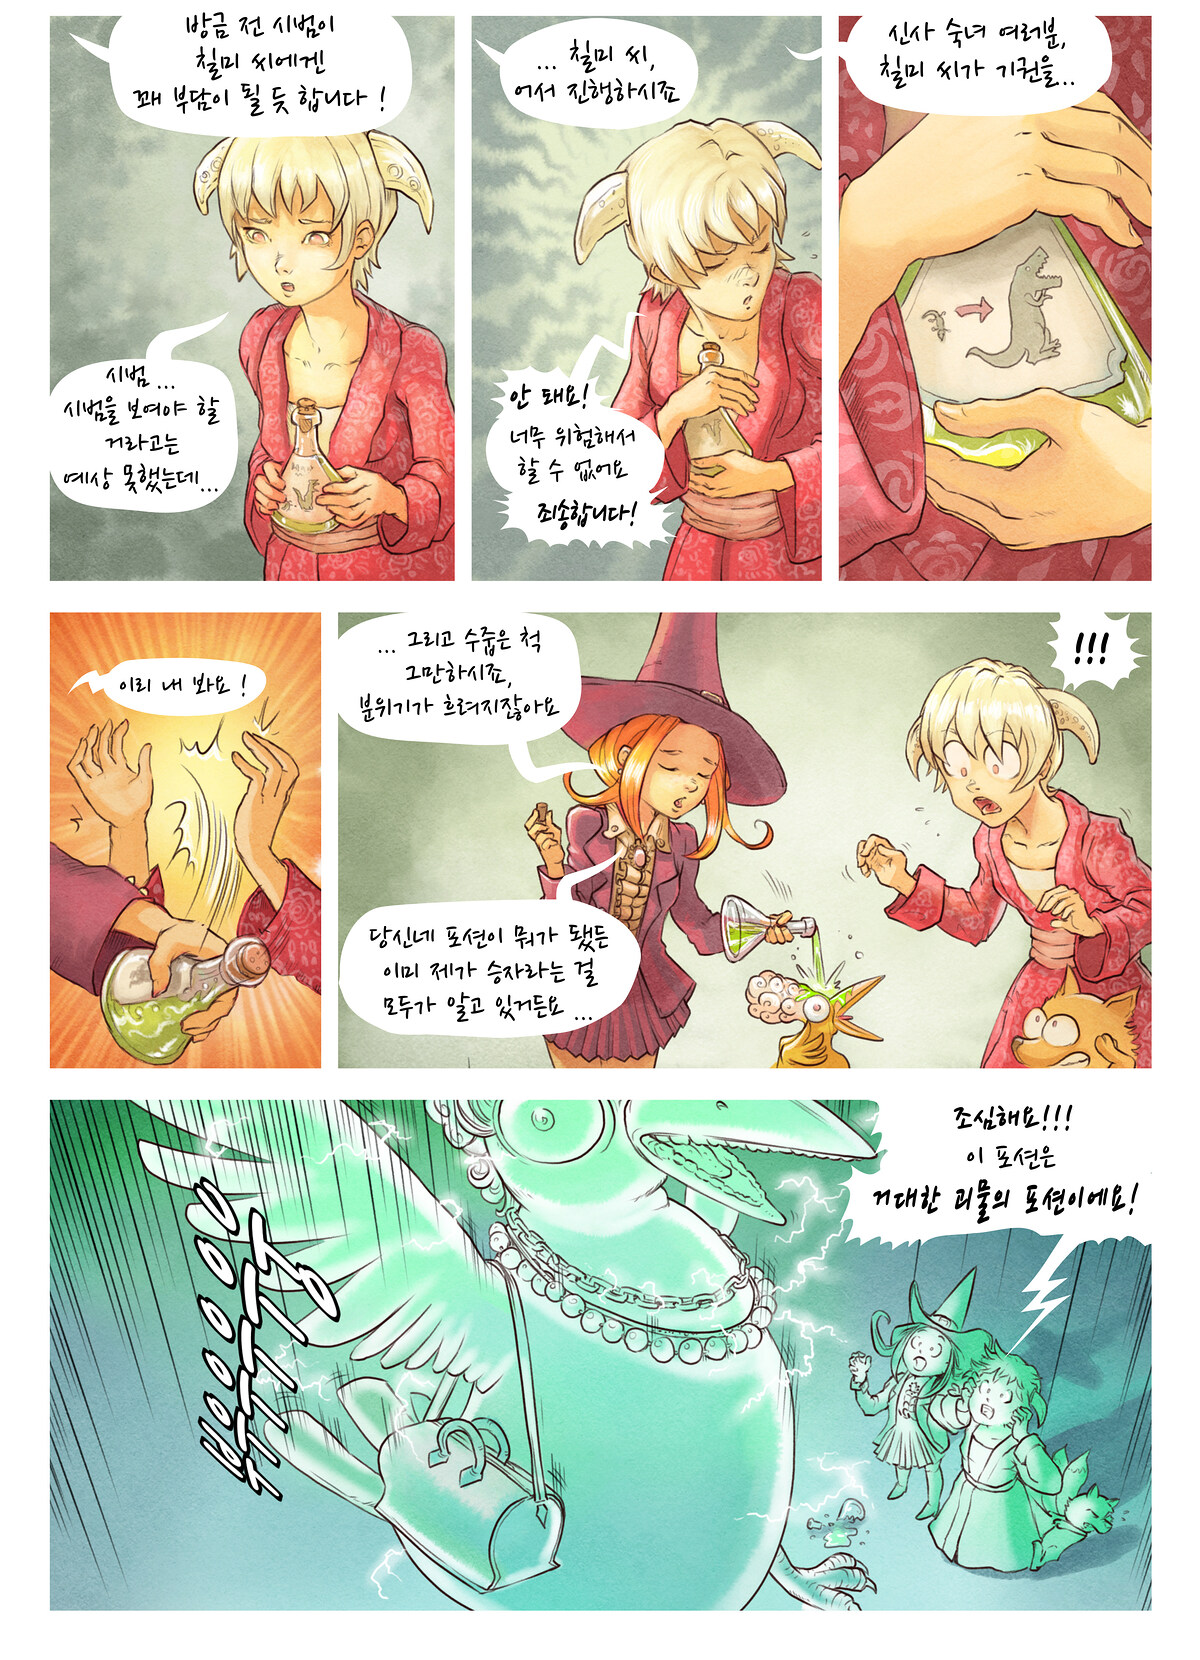 A webcomic page of Pepper&Carrot, 에피소드 6 [kr], 페이지 6